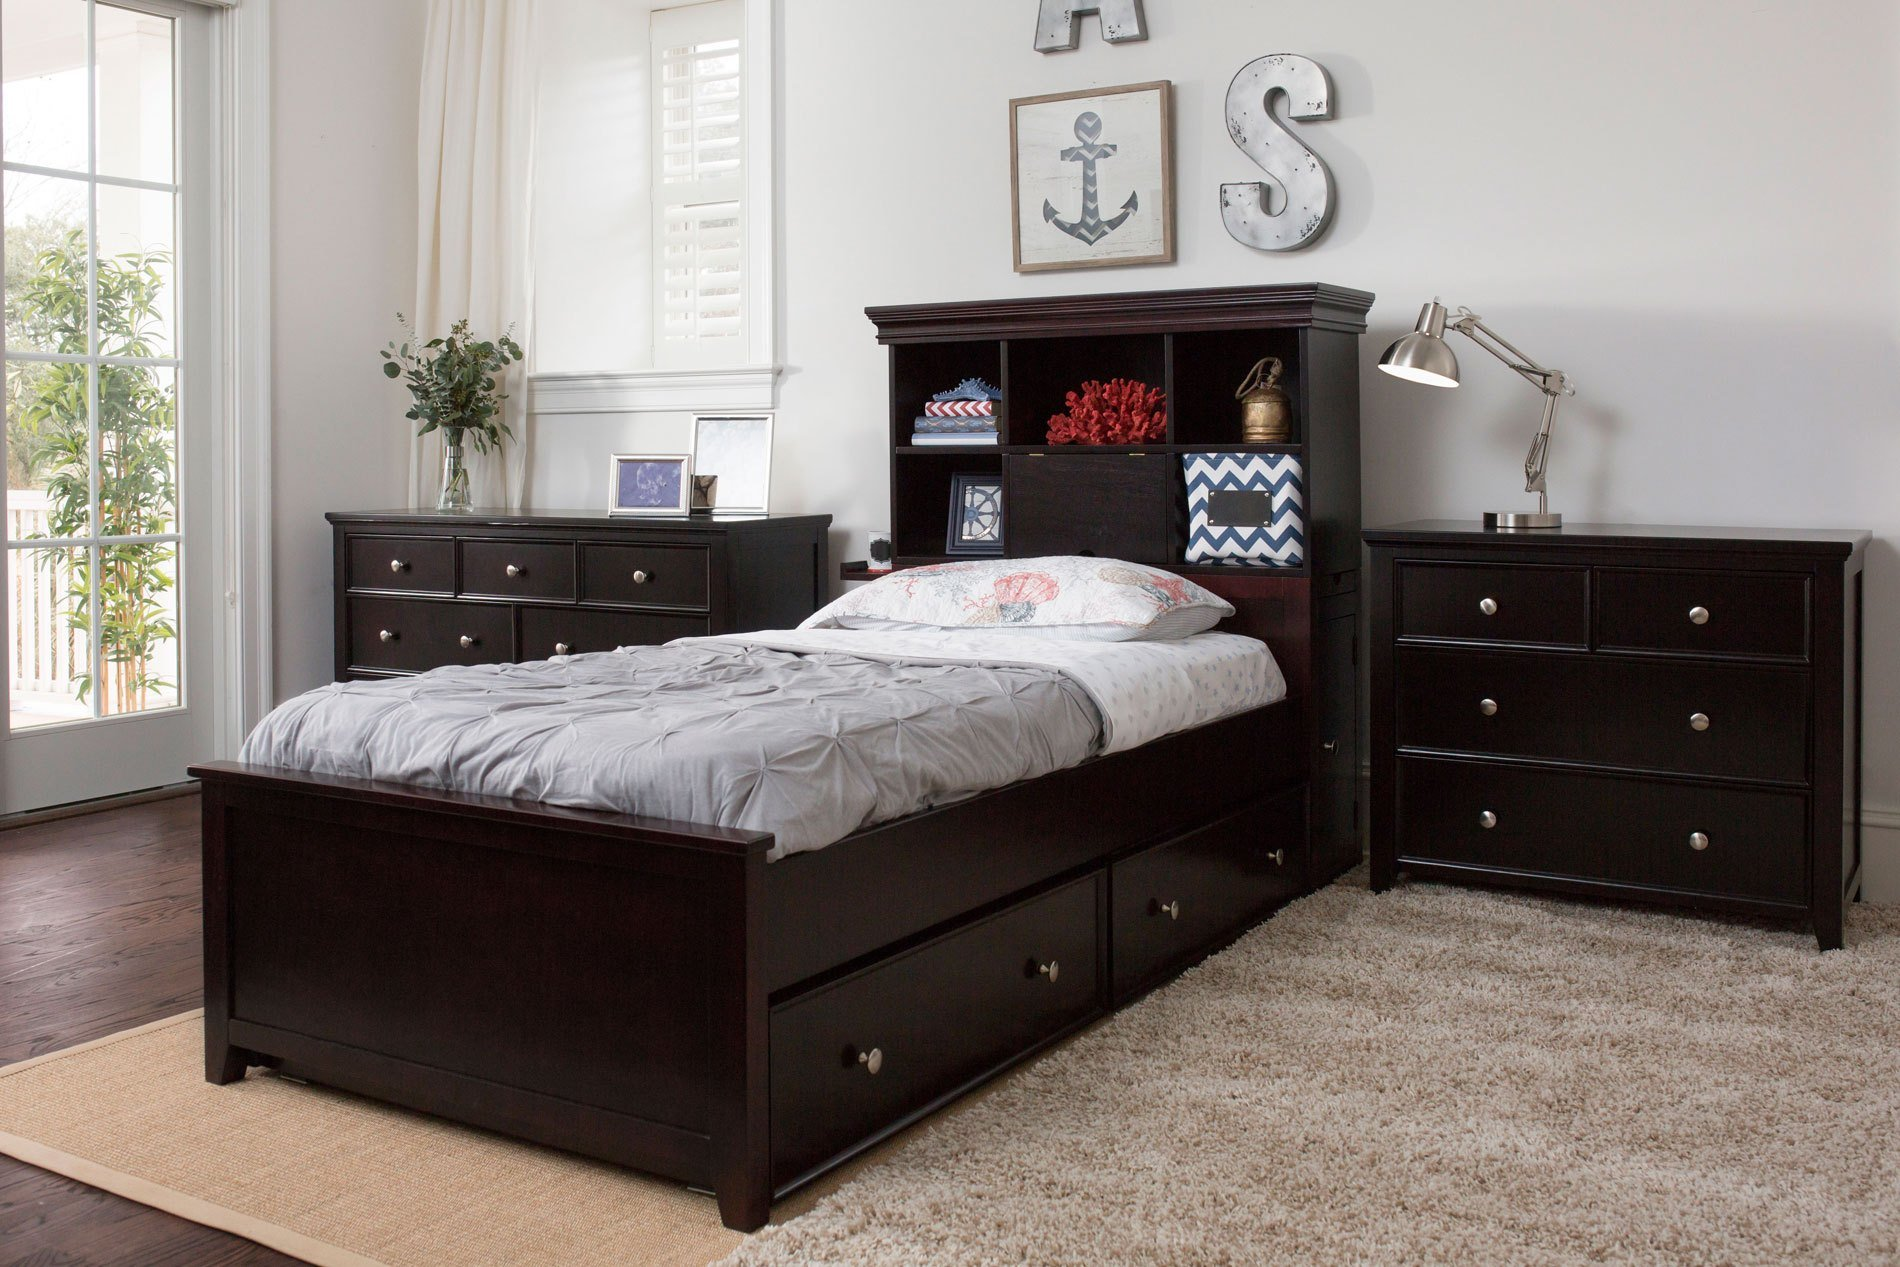 Best High Quality Hardwood Bedroom Furniture For Teens Youth With Pictures